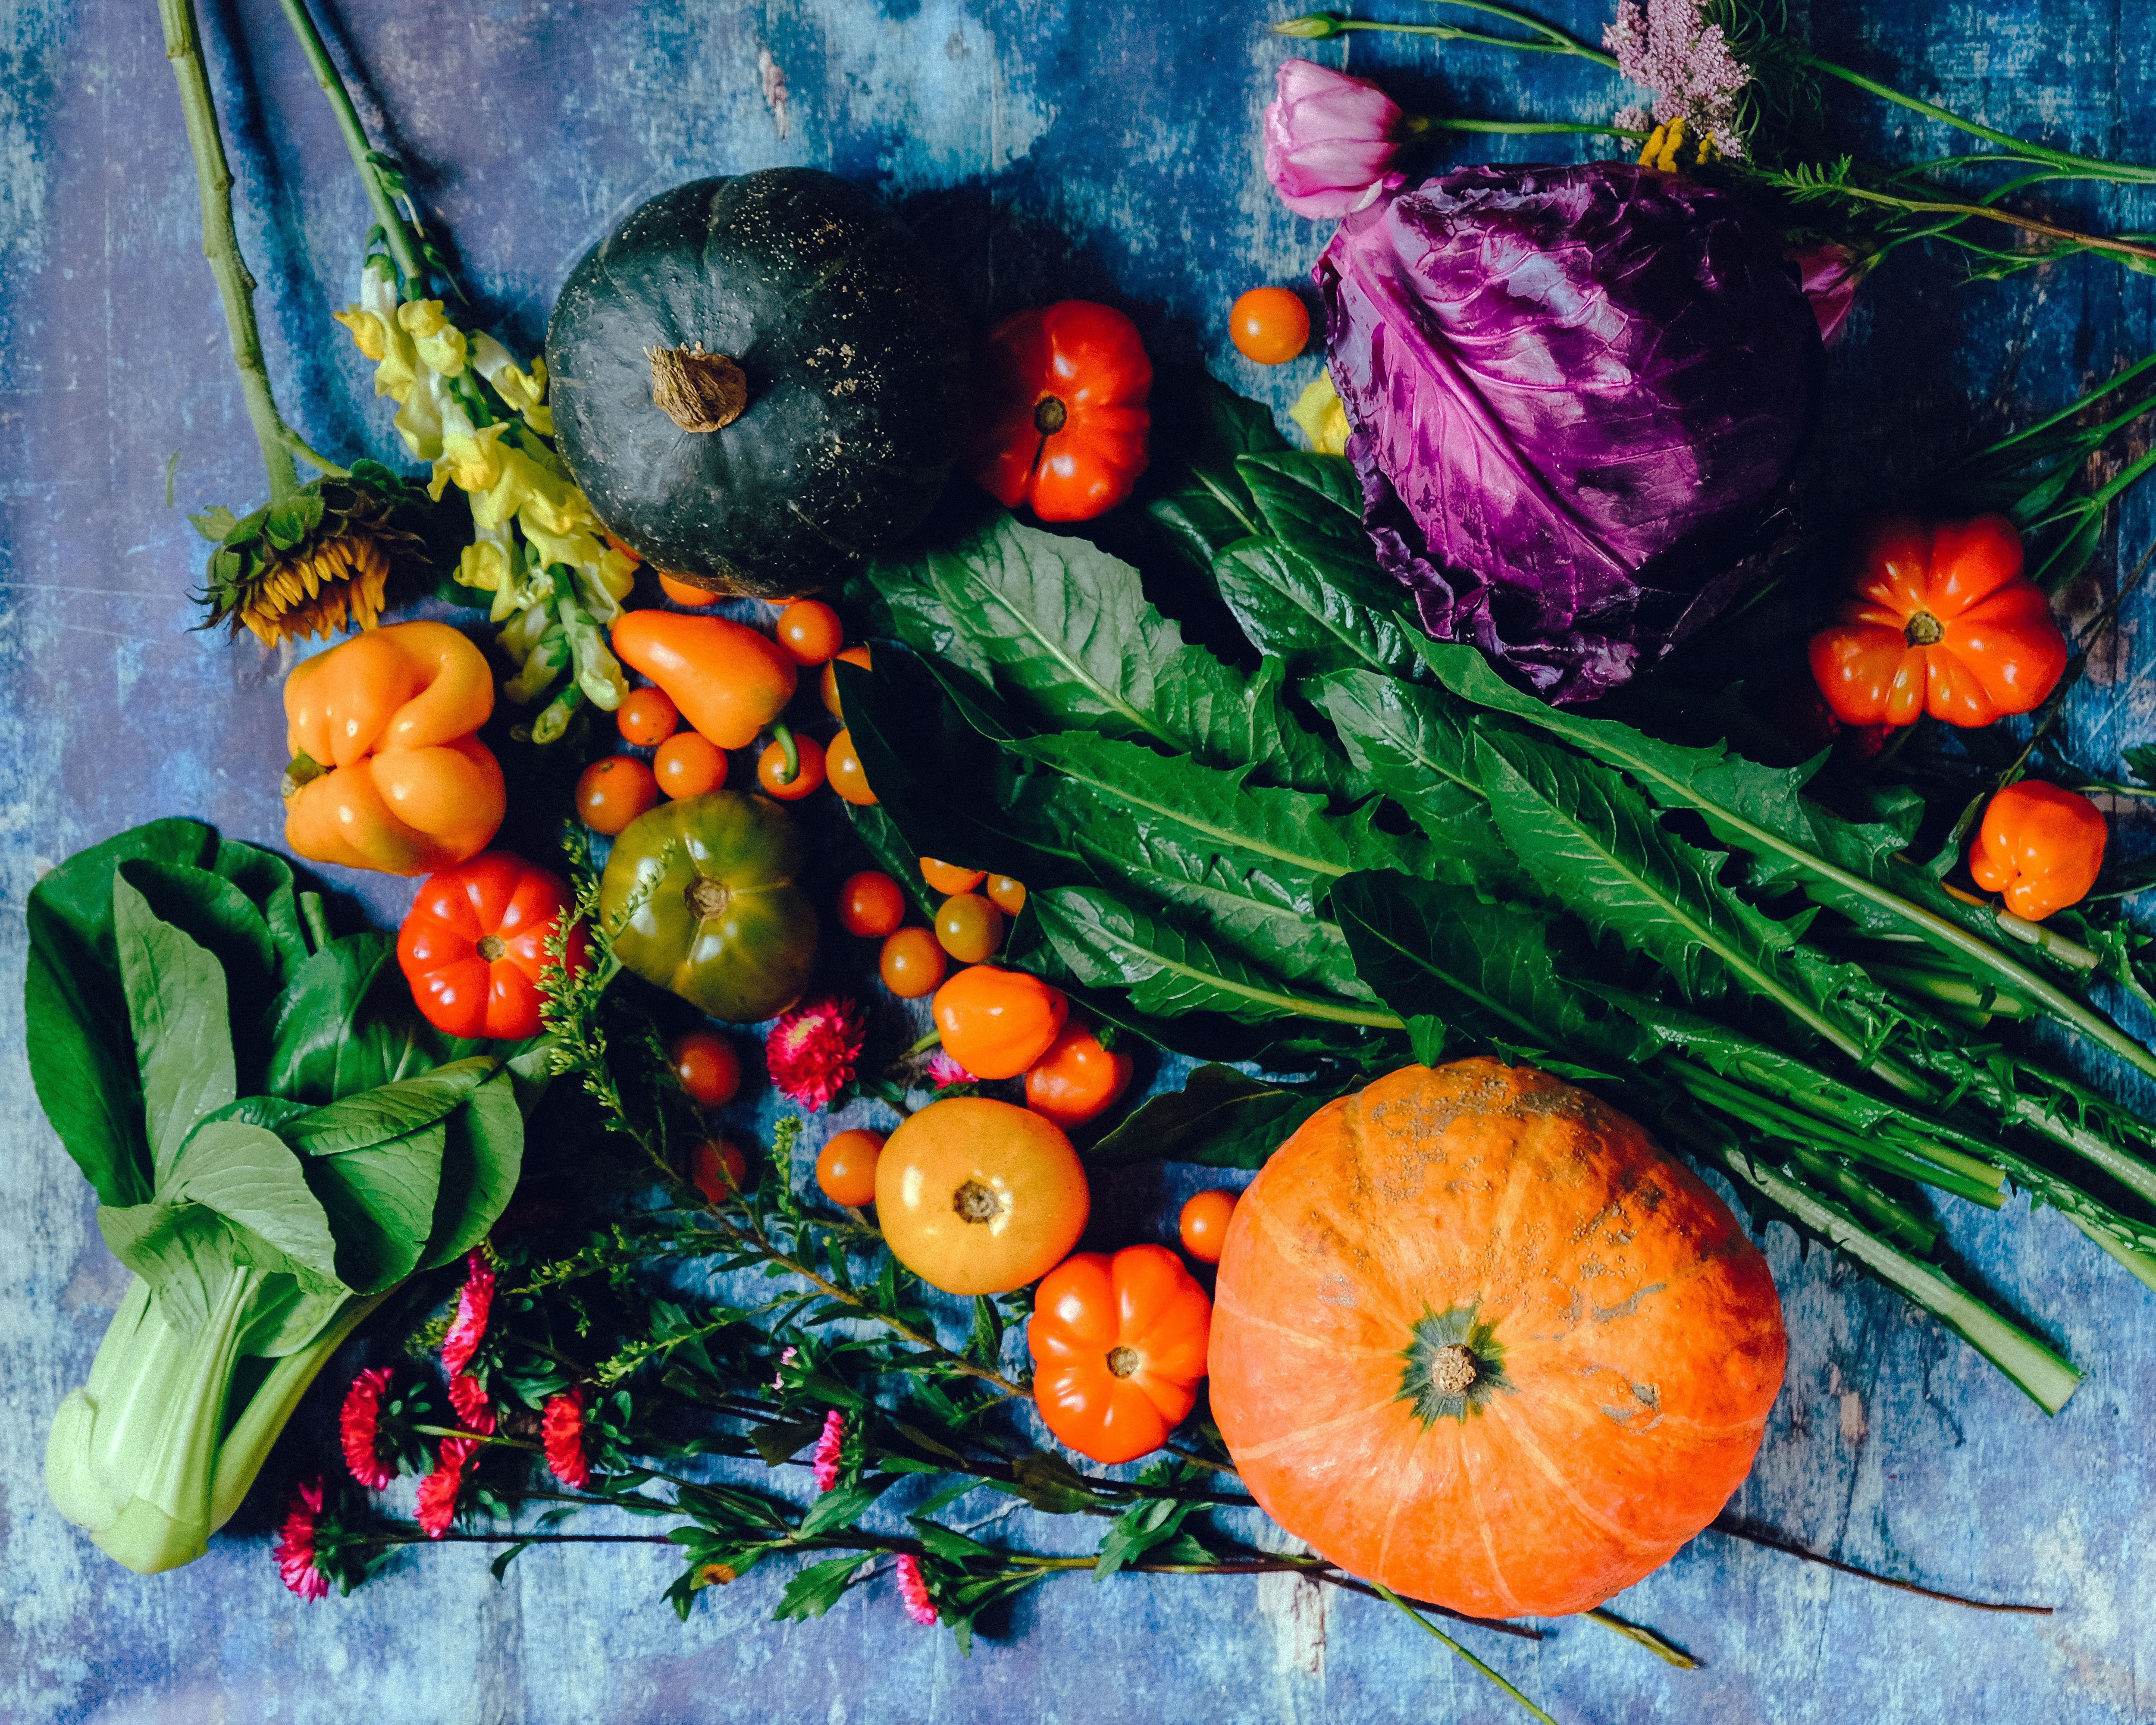 A slate table is covered with fresh garden vegetables and plants like gourds, tomatoes, cabbage and sunflowers. Photo by Ella Olson from Pexels.